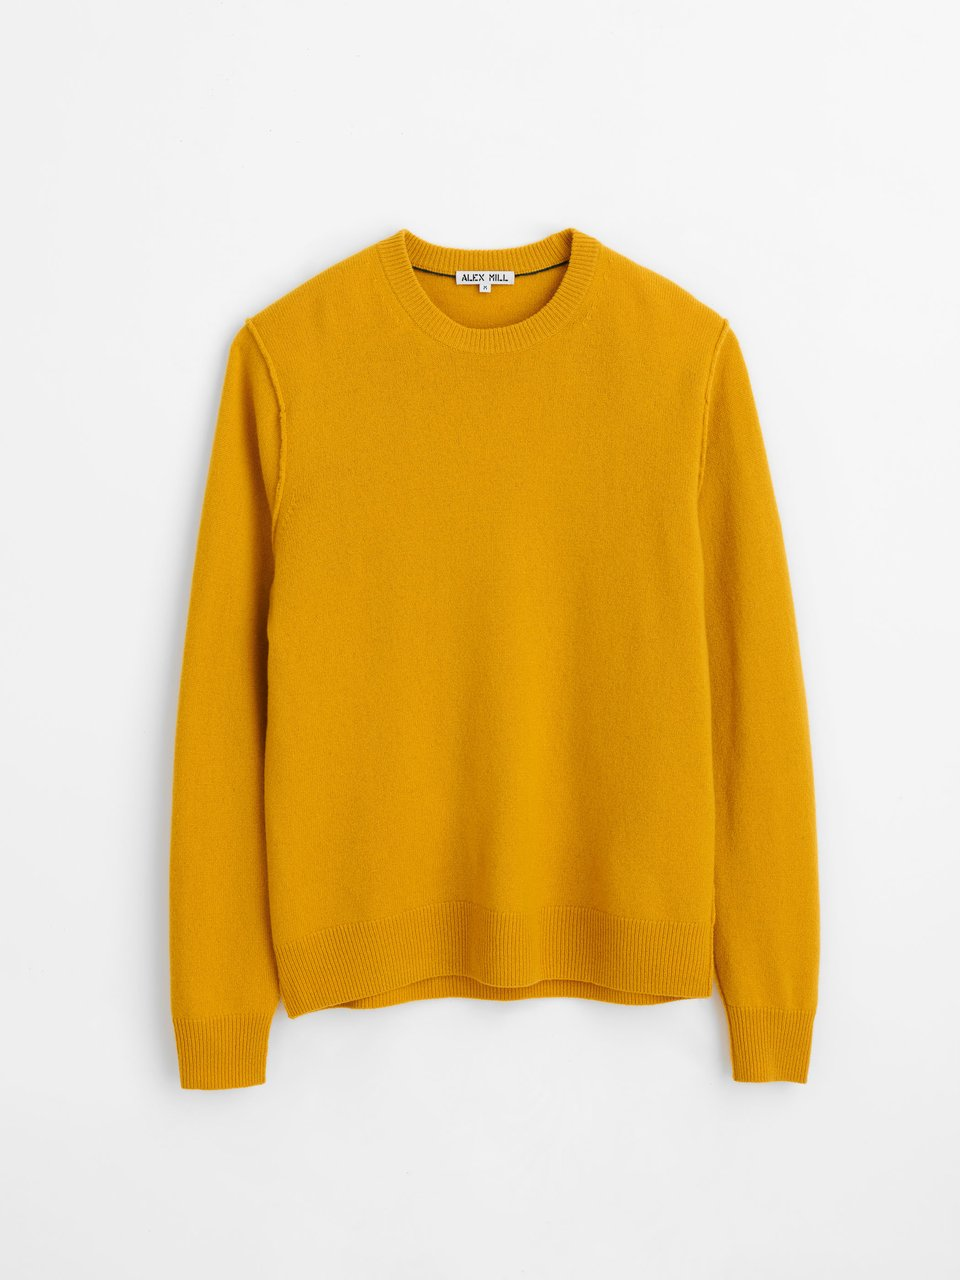 Alex Mill Reverse Seam Sweater in Superfine Merino Wool - Sun